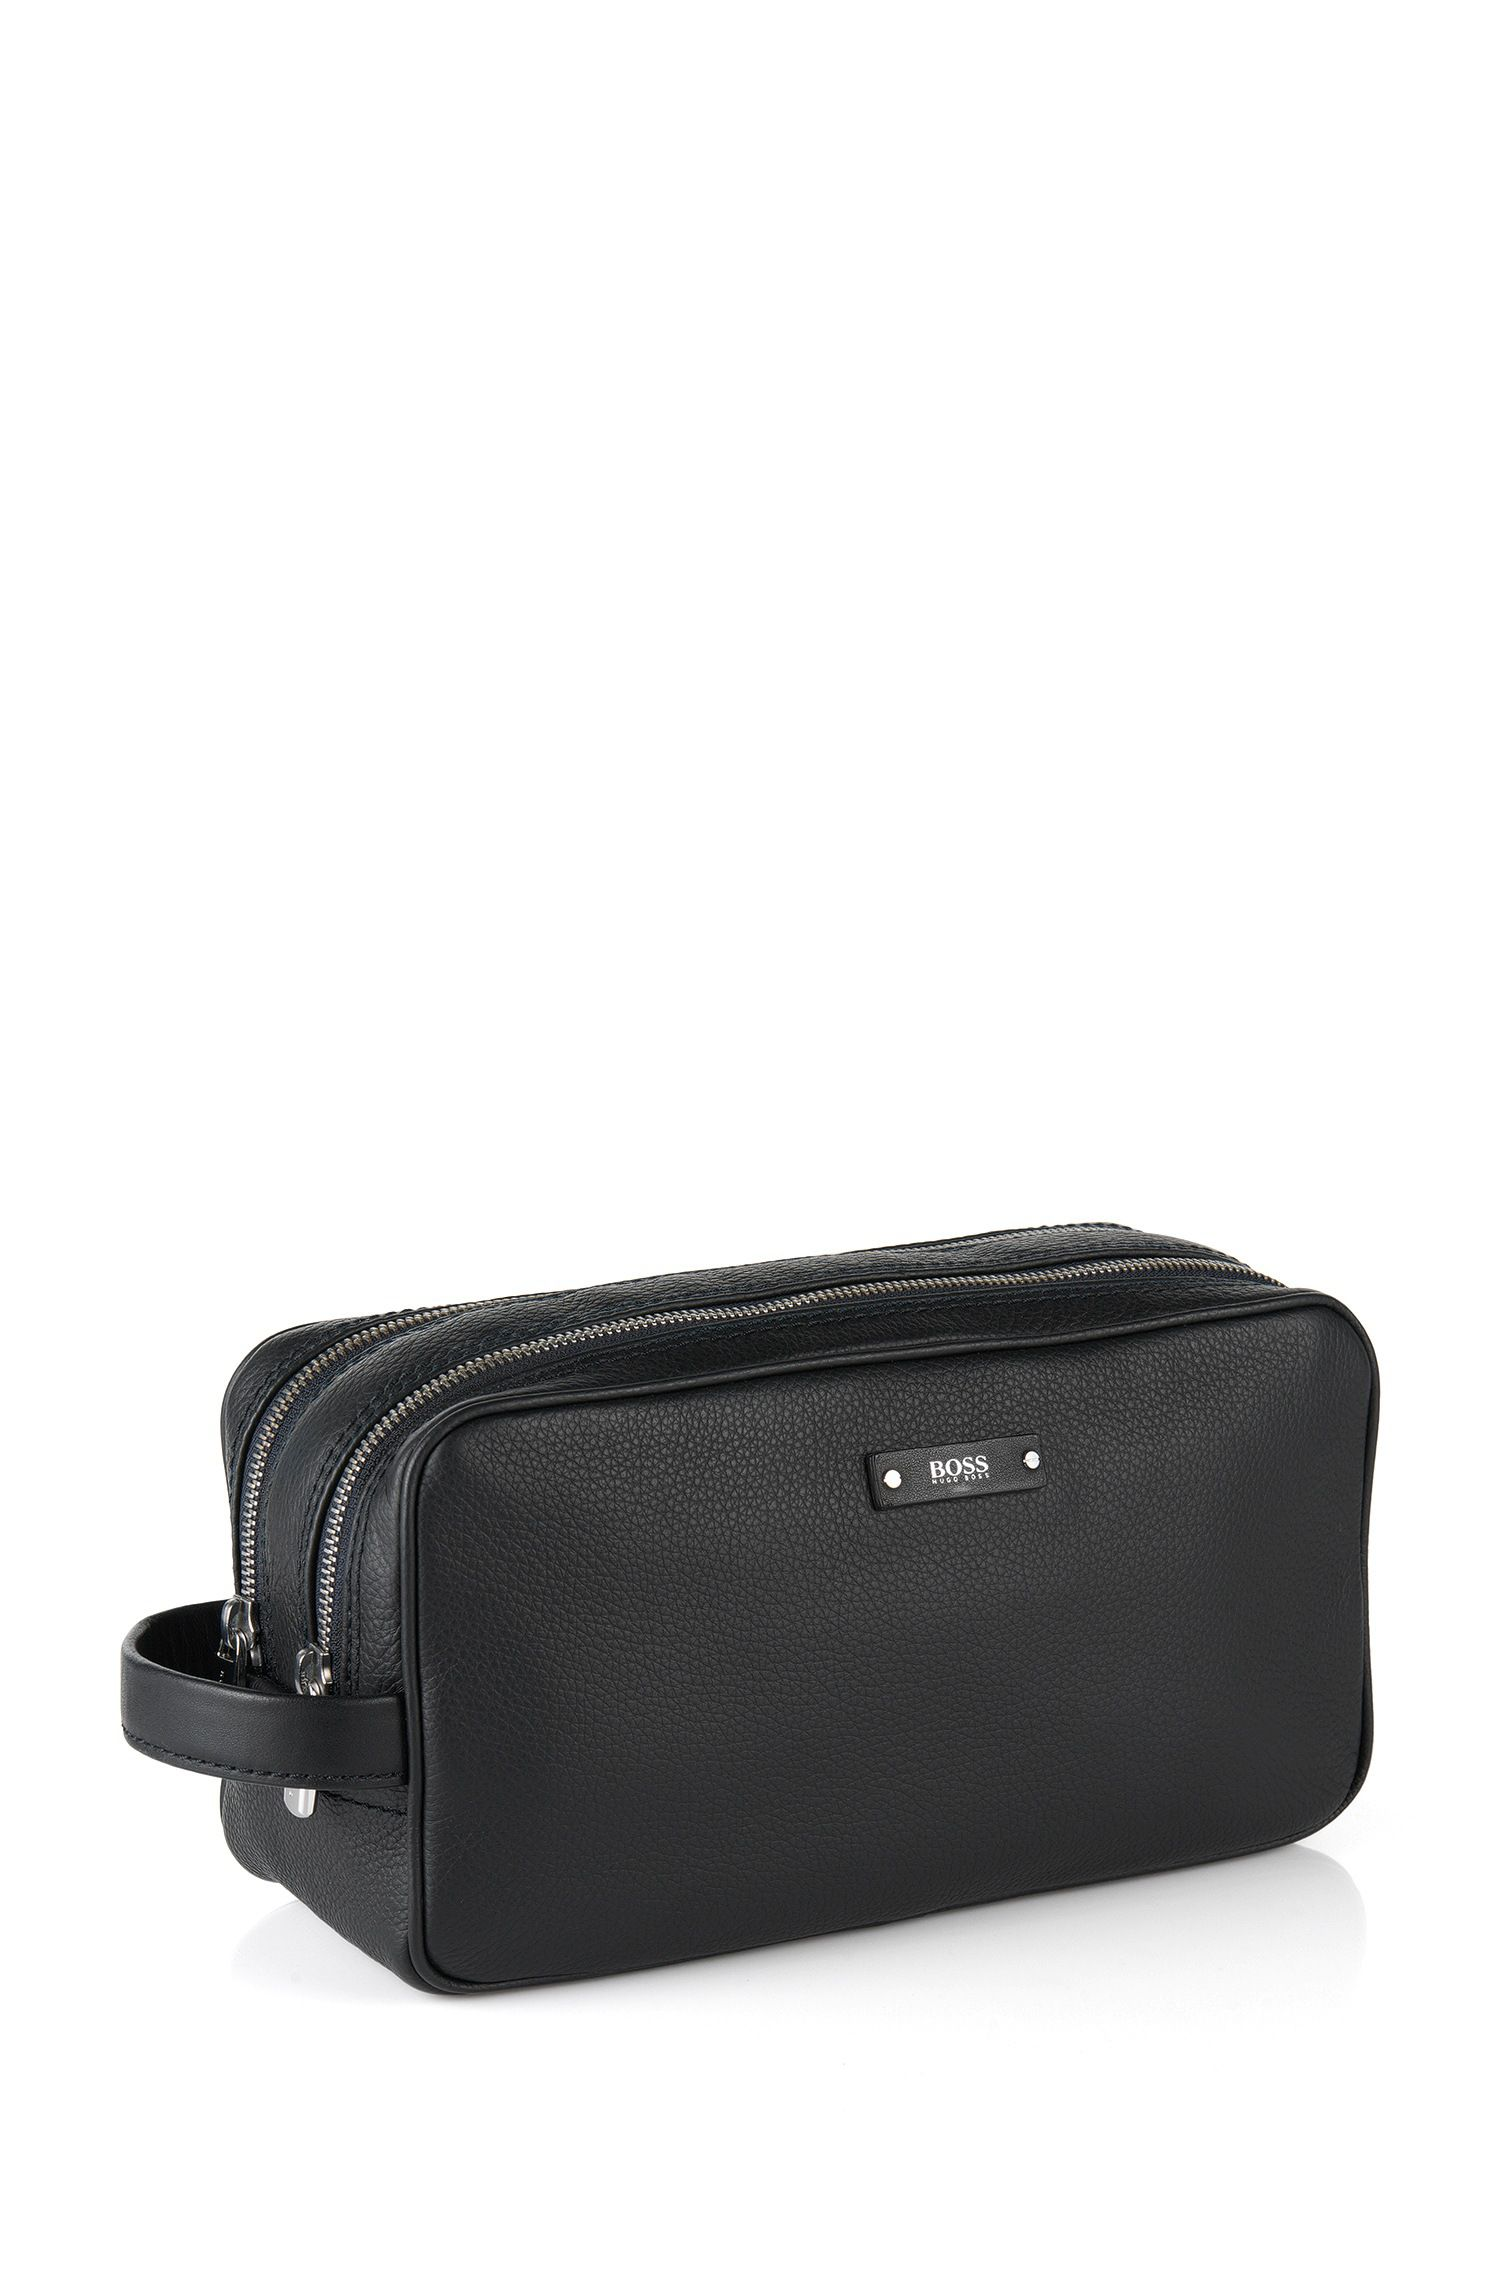 Traveller Collection Italian leather washbag